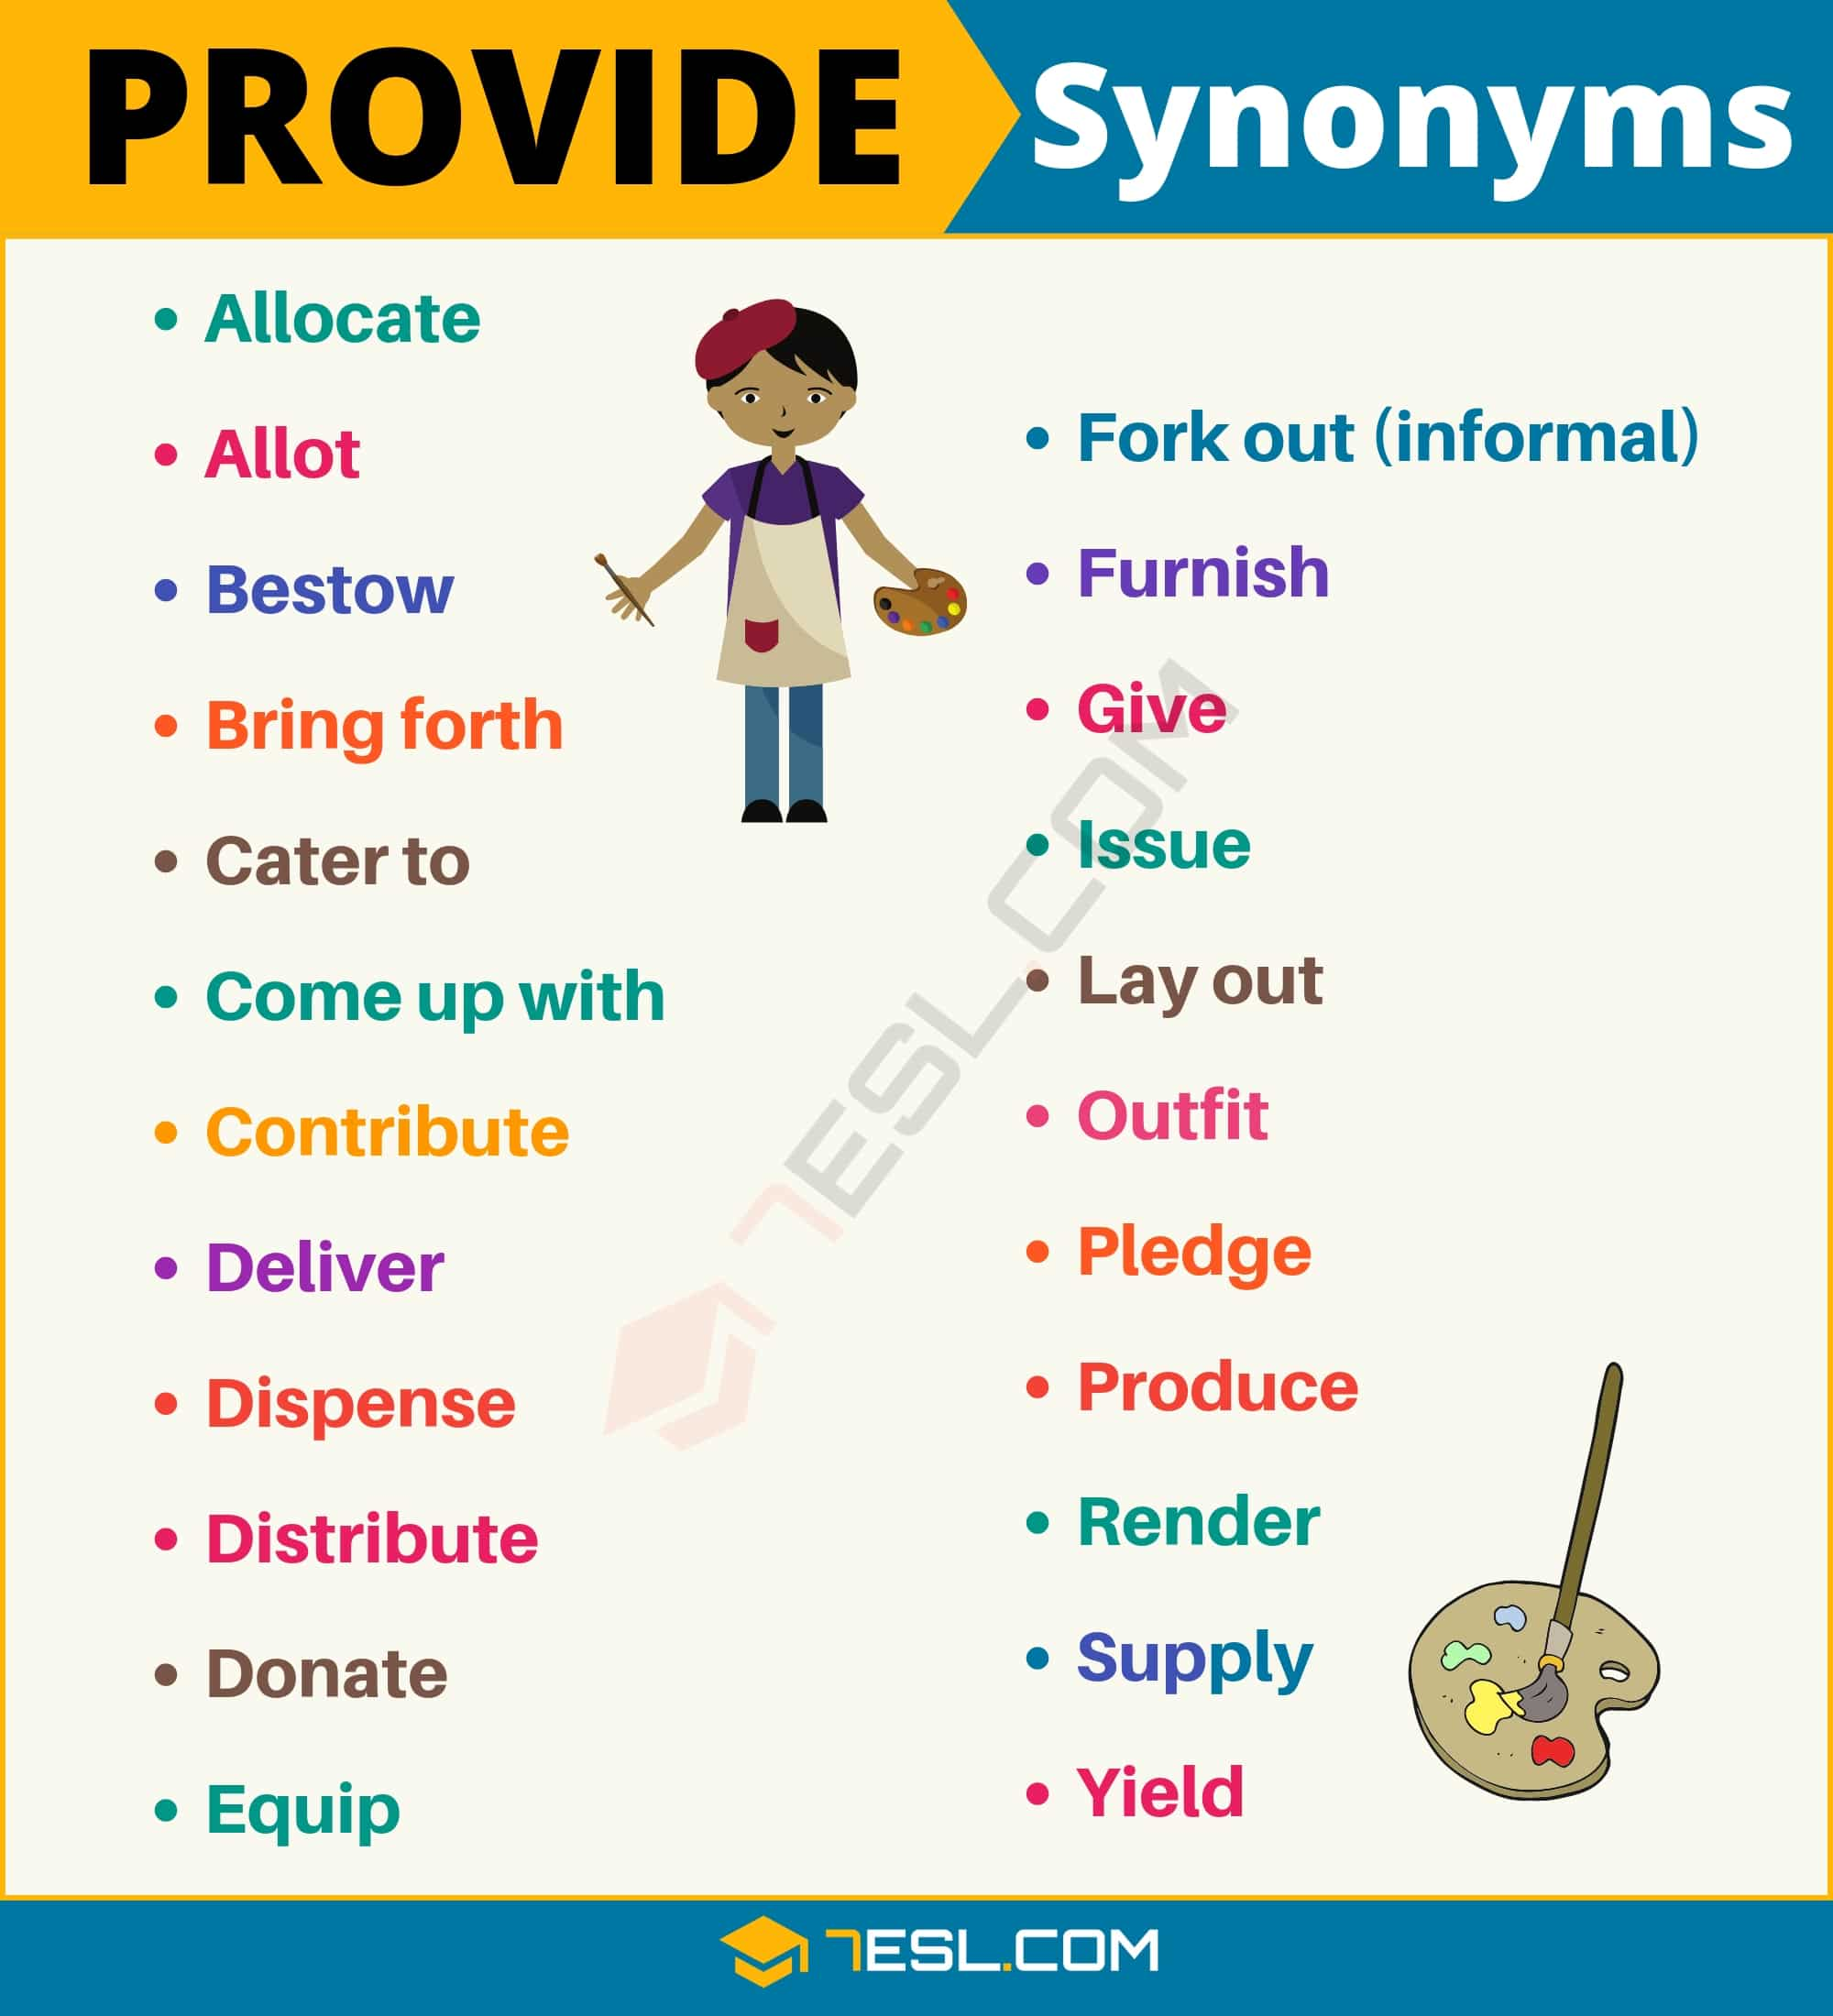 PROVIDE Synonym: List of 23 Synonyms for Provide in English